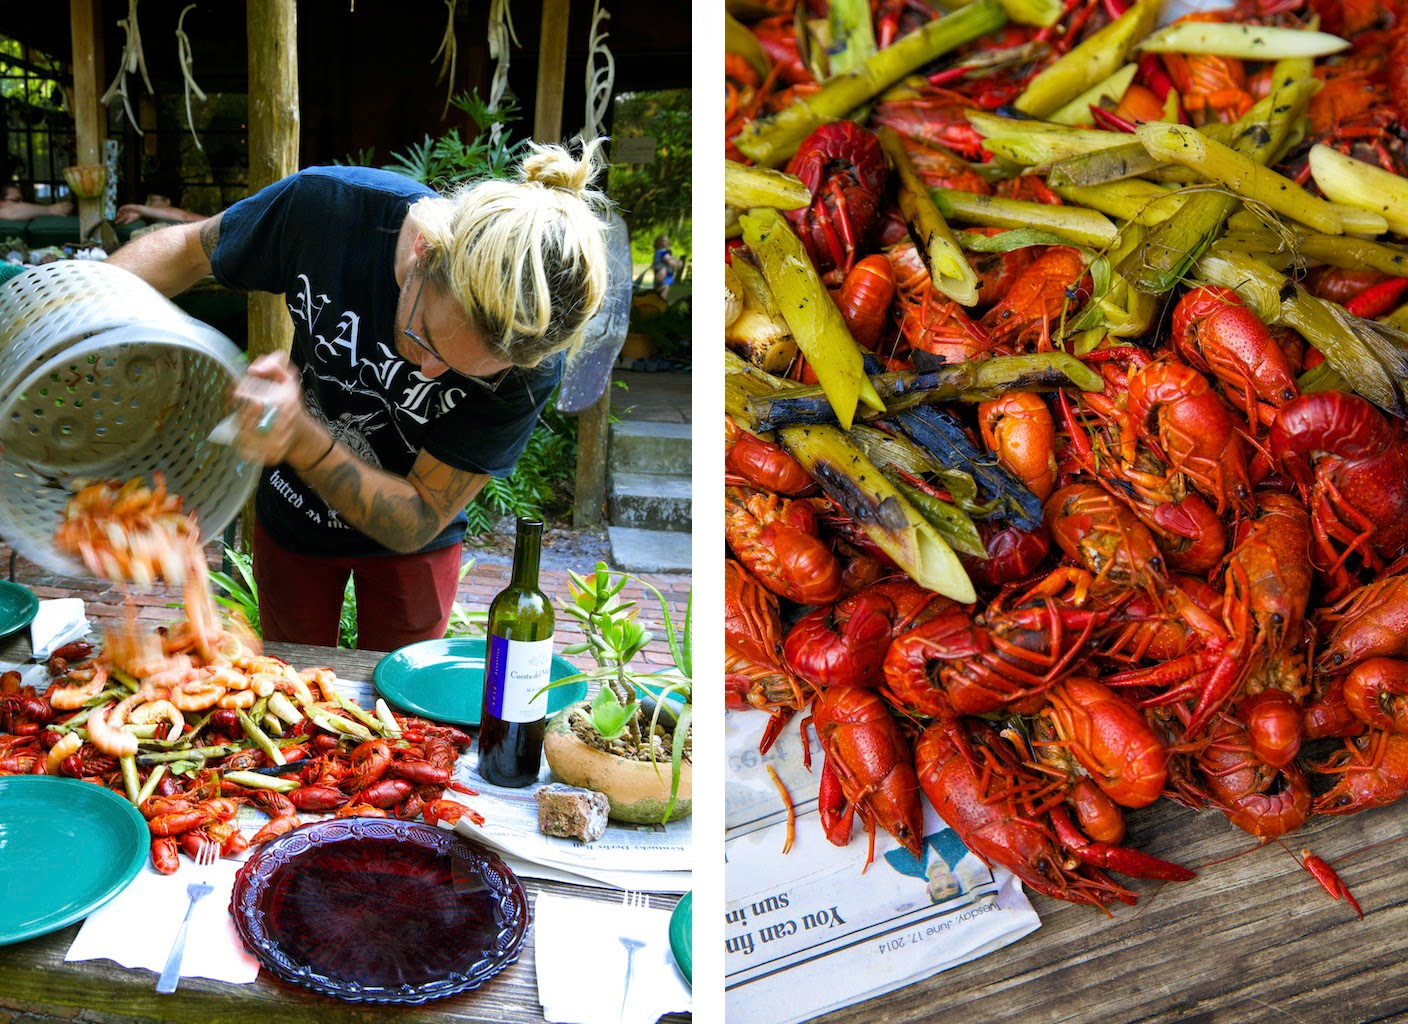 Alex Phaneuf cooks crawfish and shrimp in North Florida